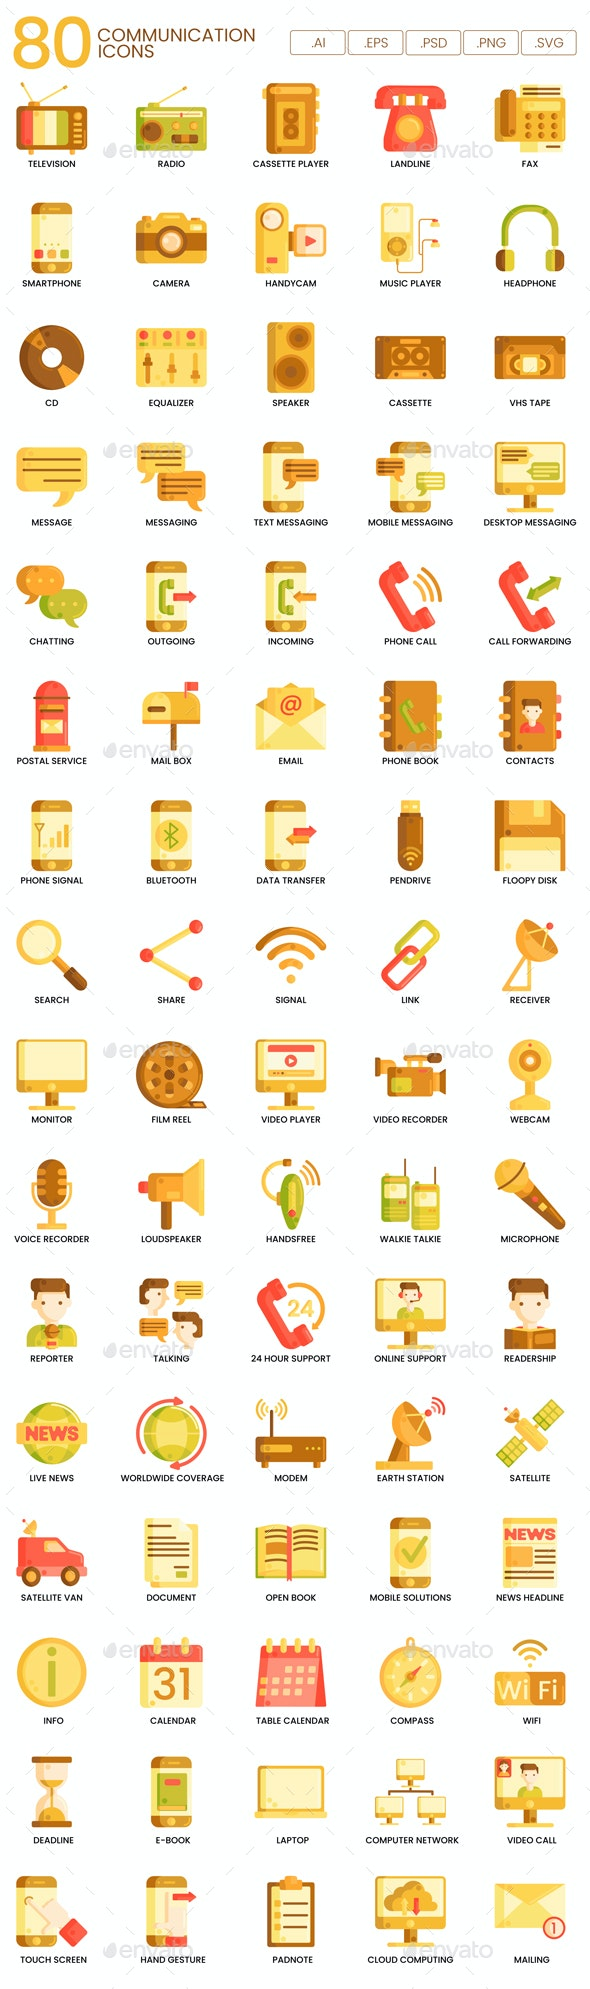 Communication Icons - Caramel Series - Business Icons